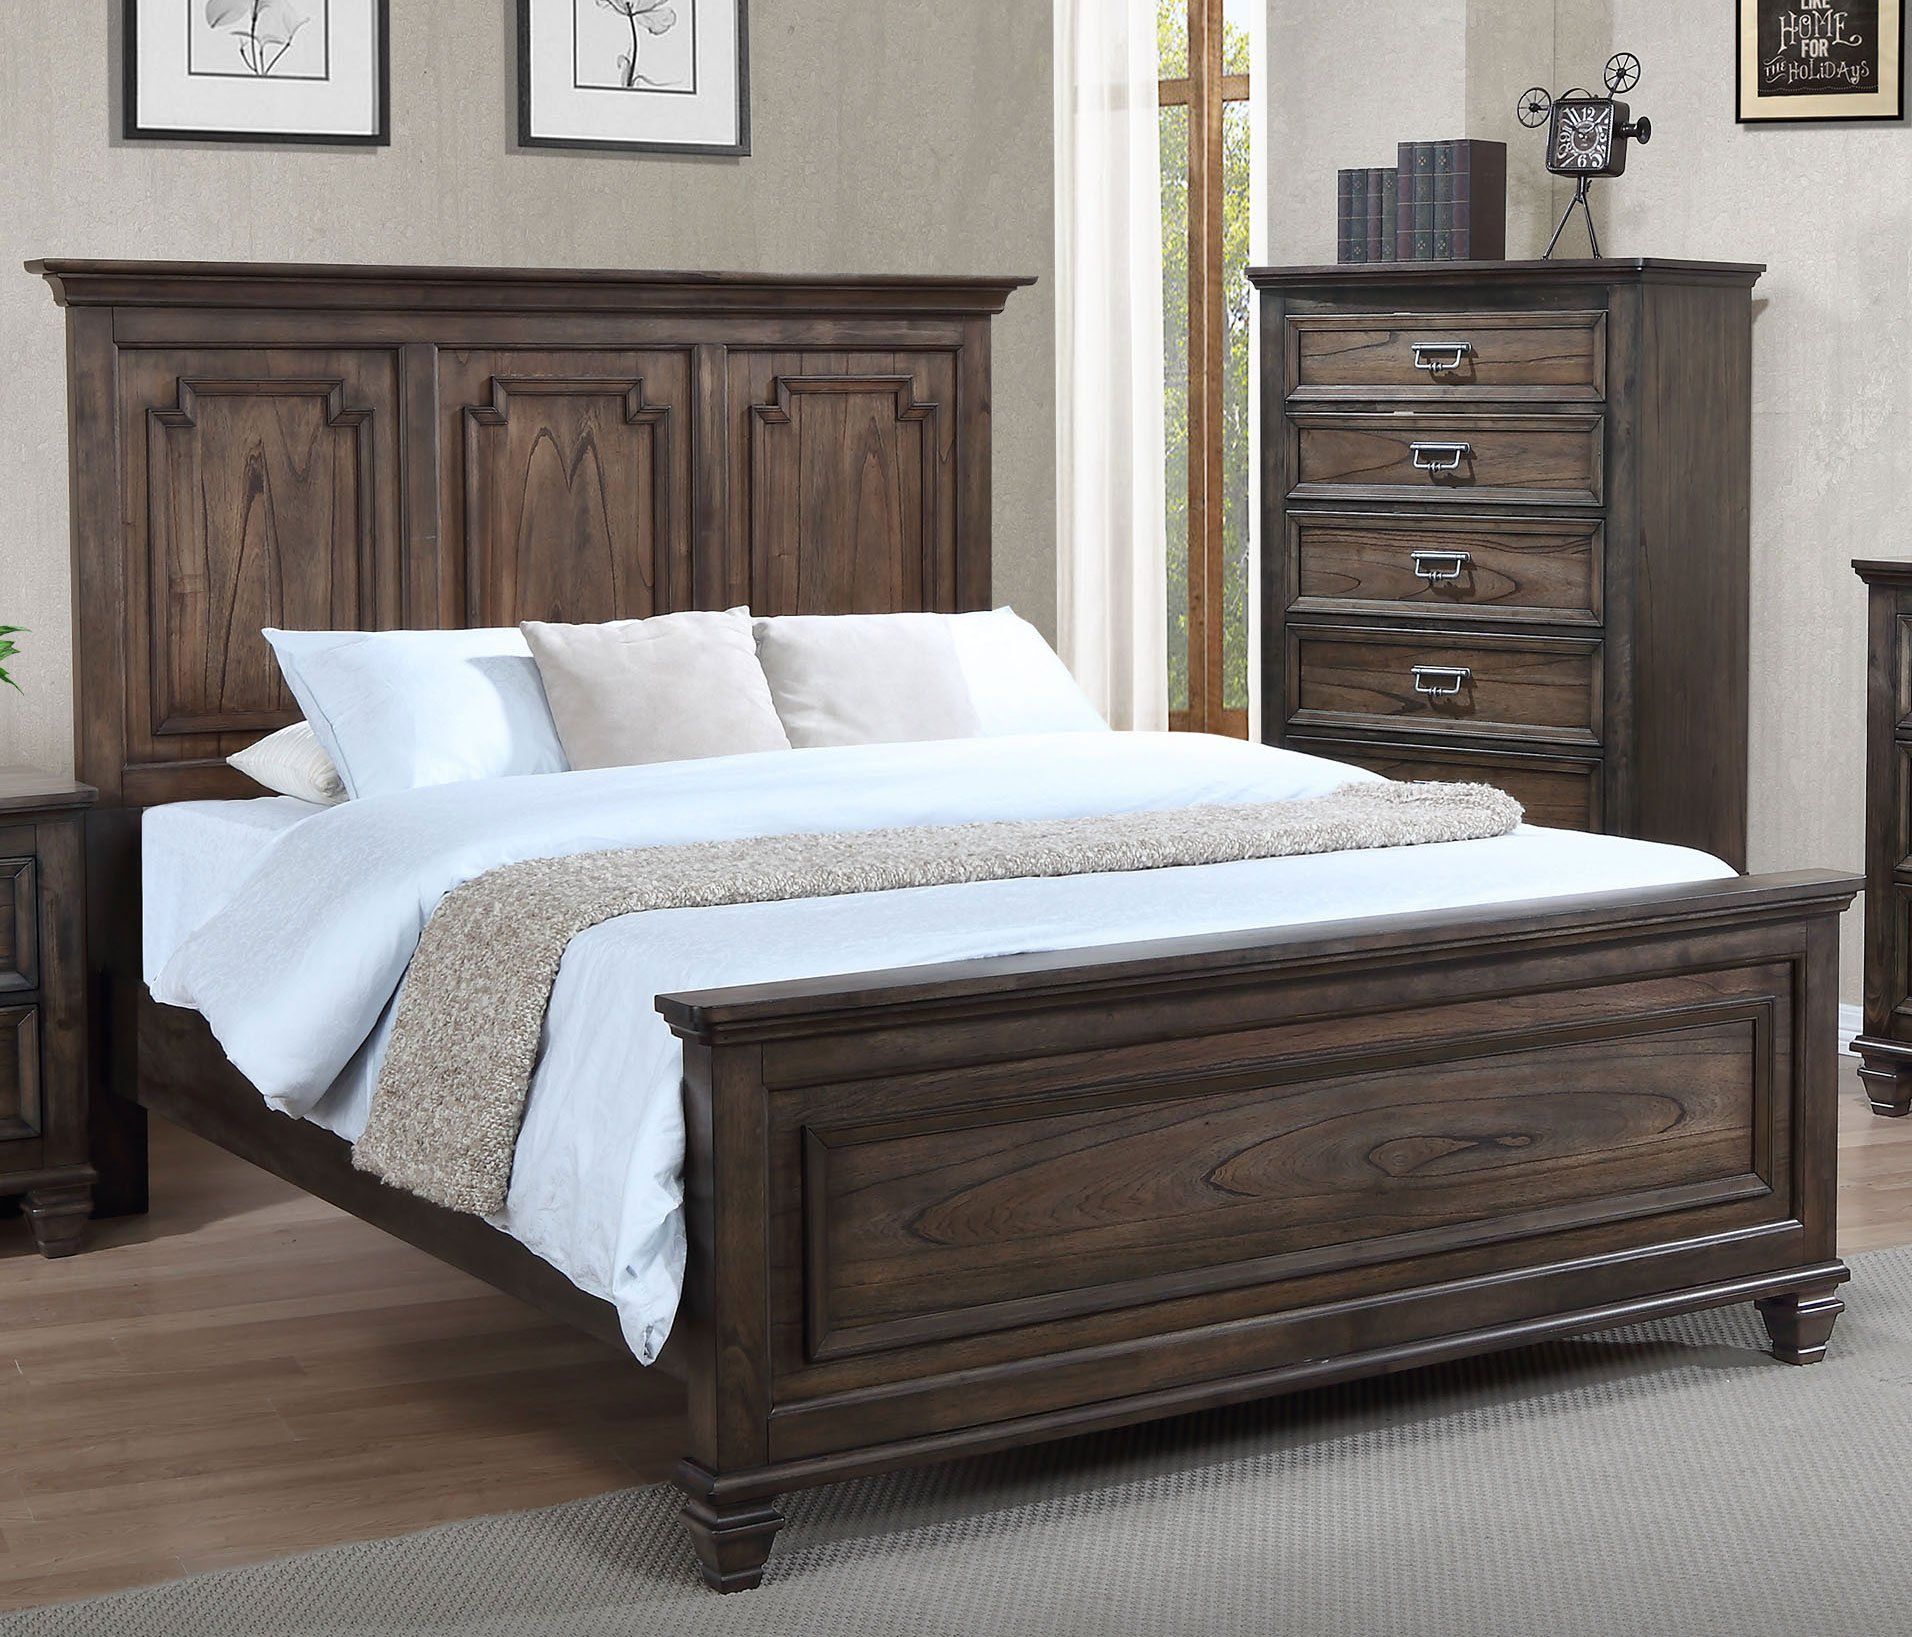 classic traditional antique brown 6 piece king bedroom set 17557 | classic traditional antique brown king size bed cbell rcwilley image1